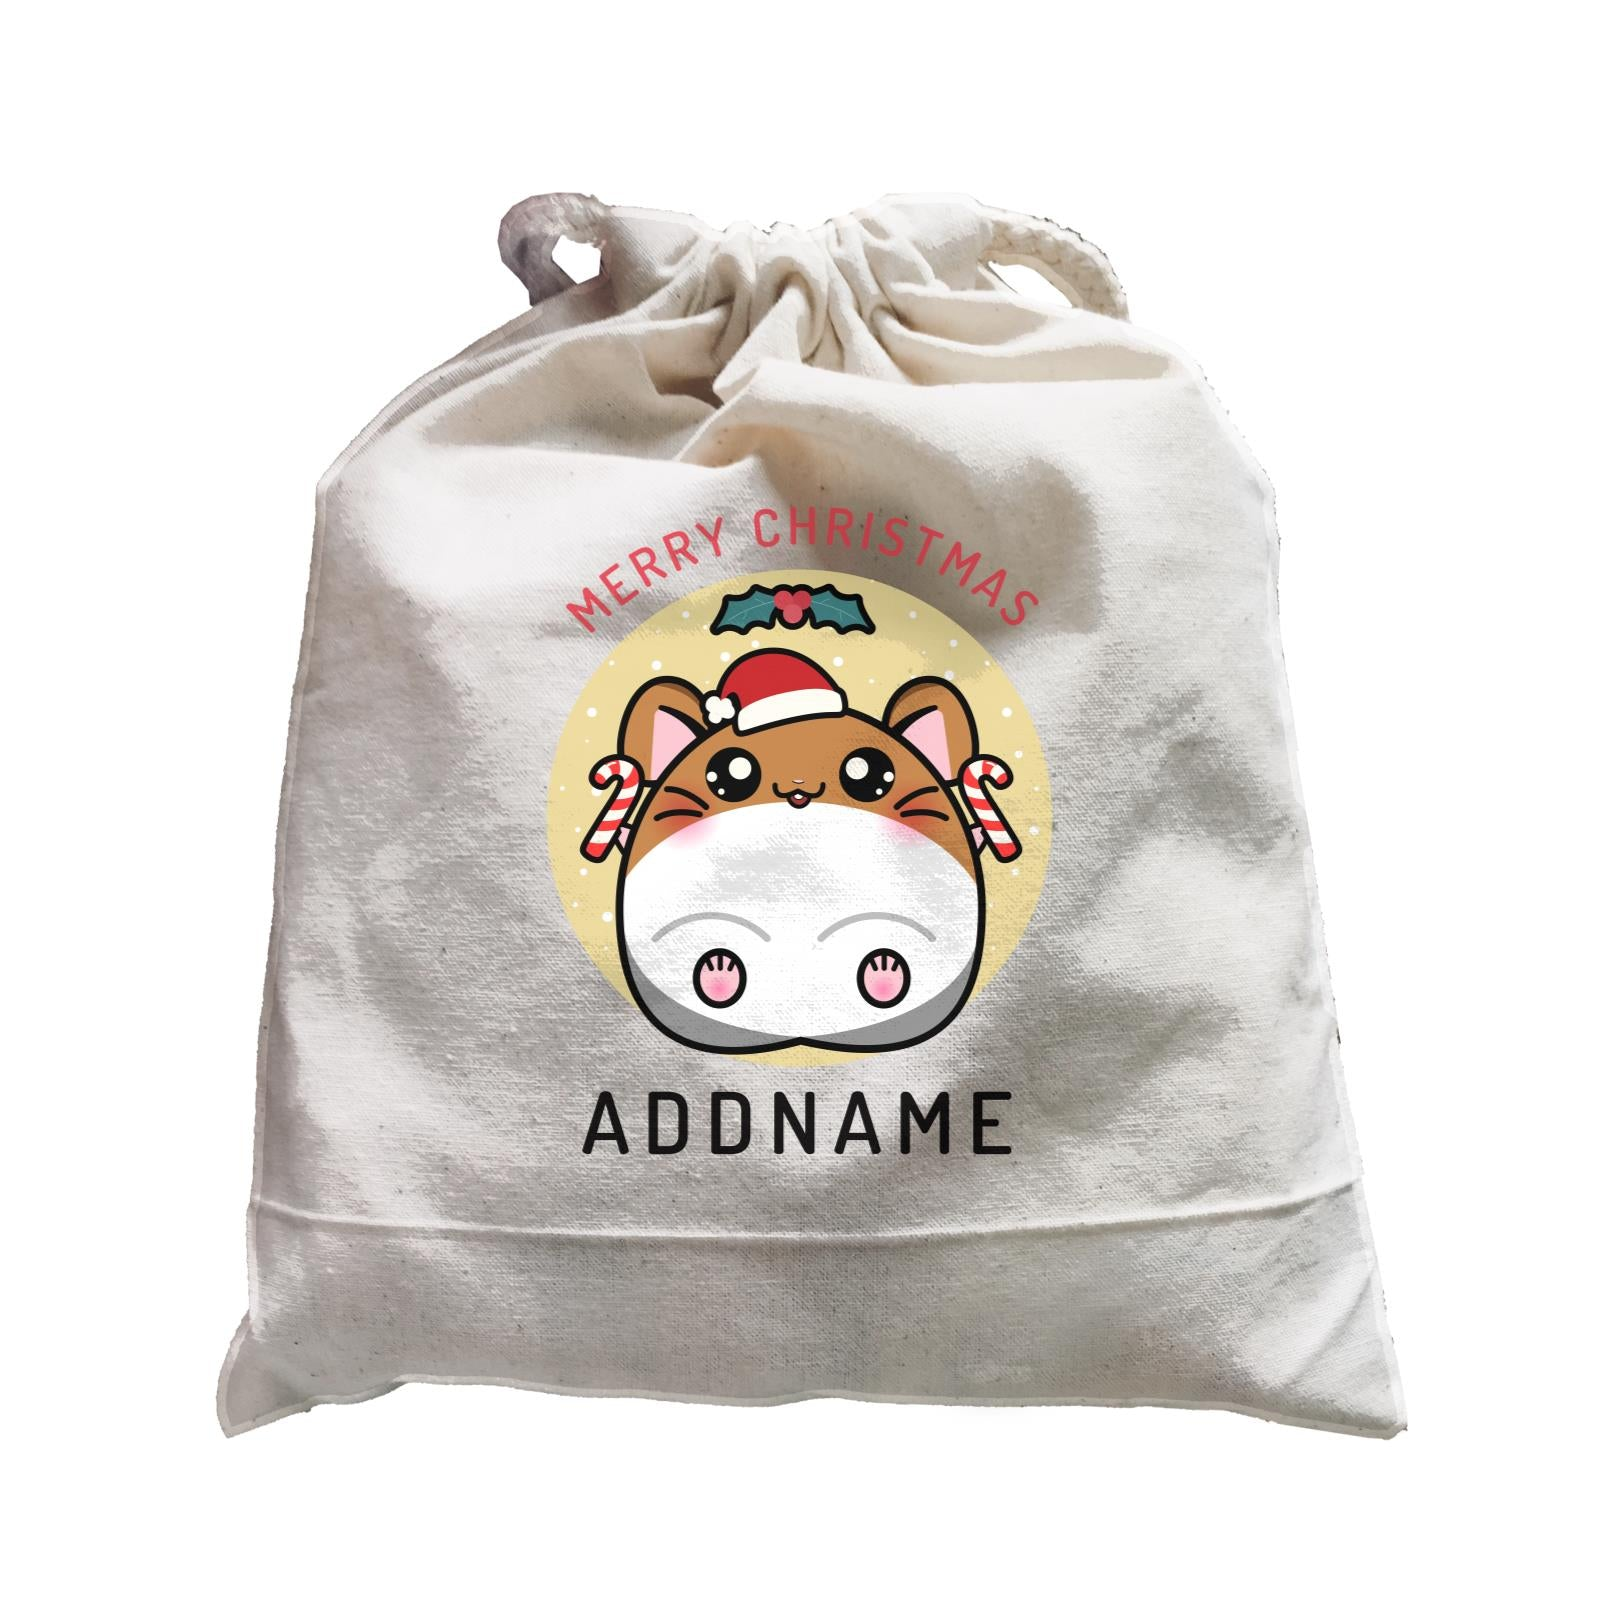 Merry Christmas Cute Santa Boy Hamster with Candy Cane Satchel